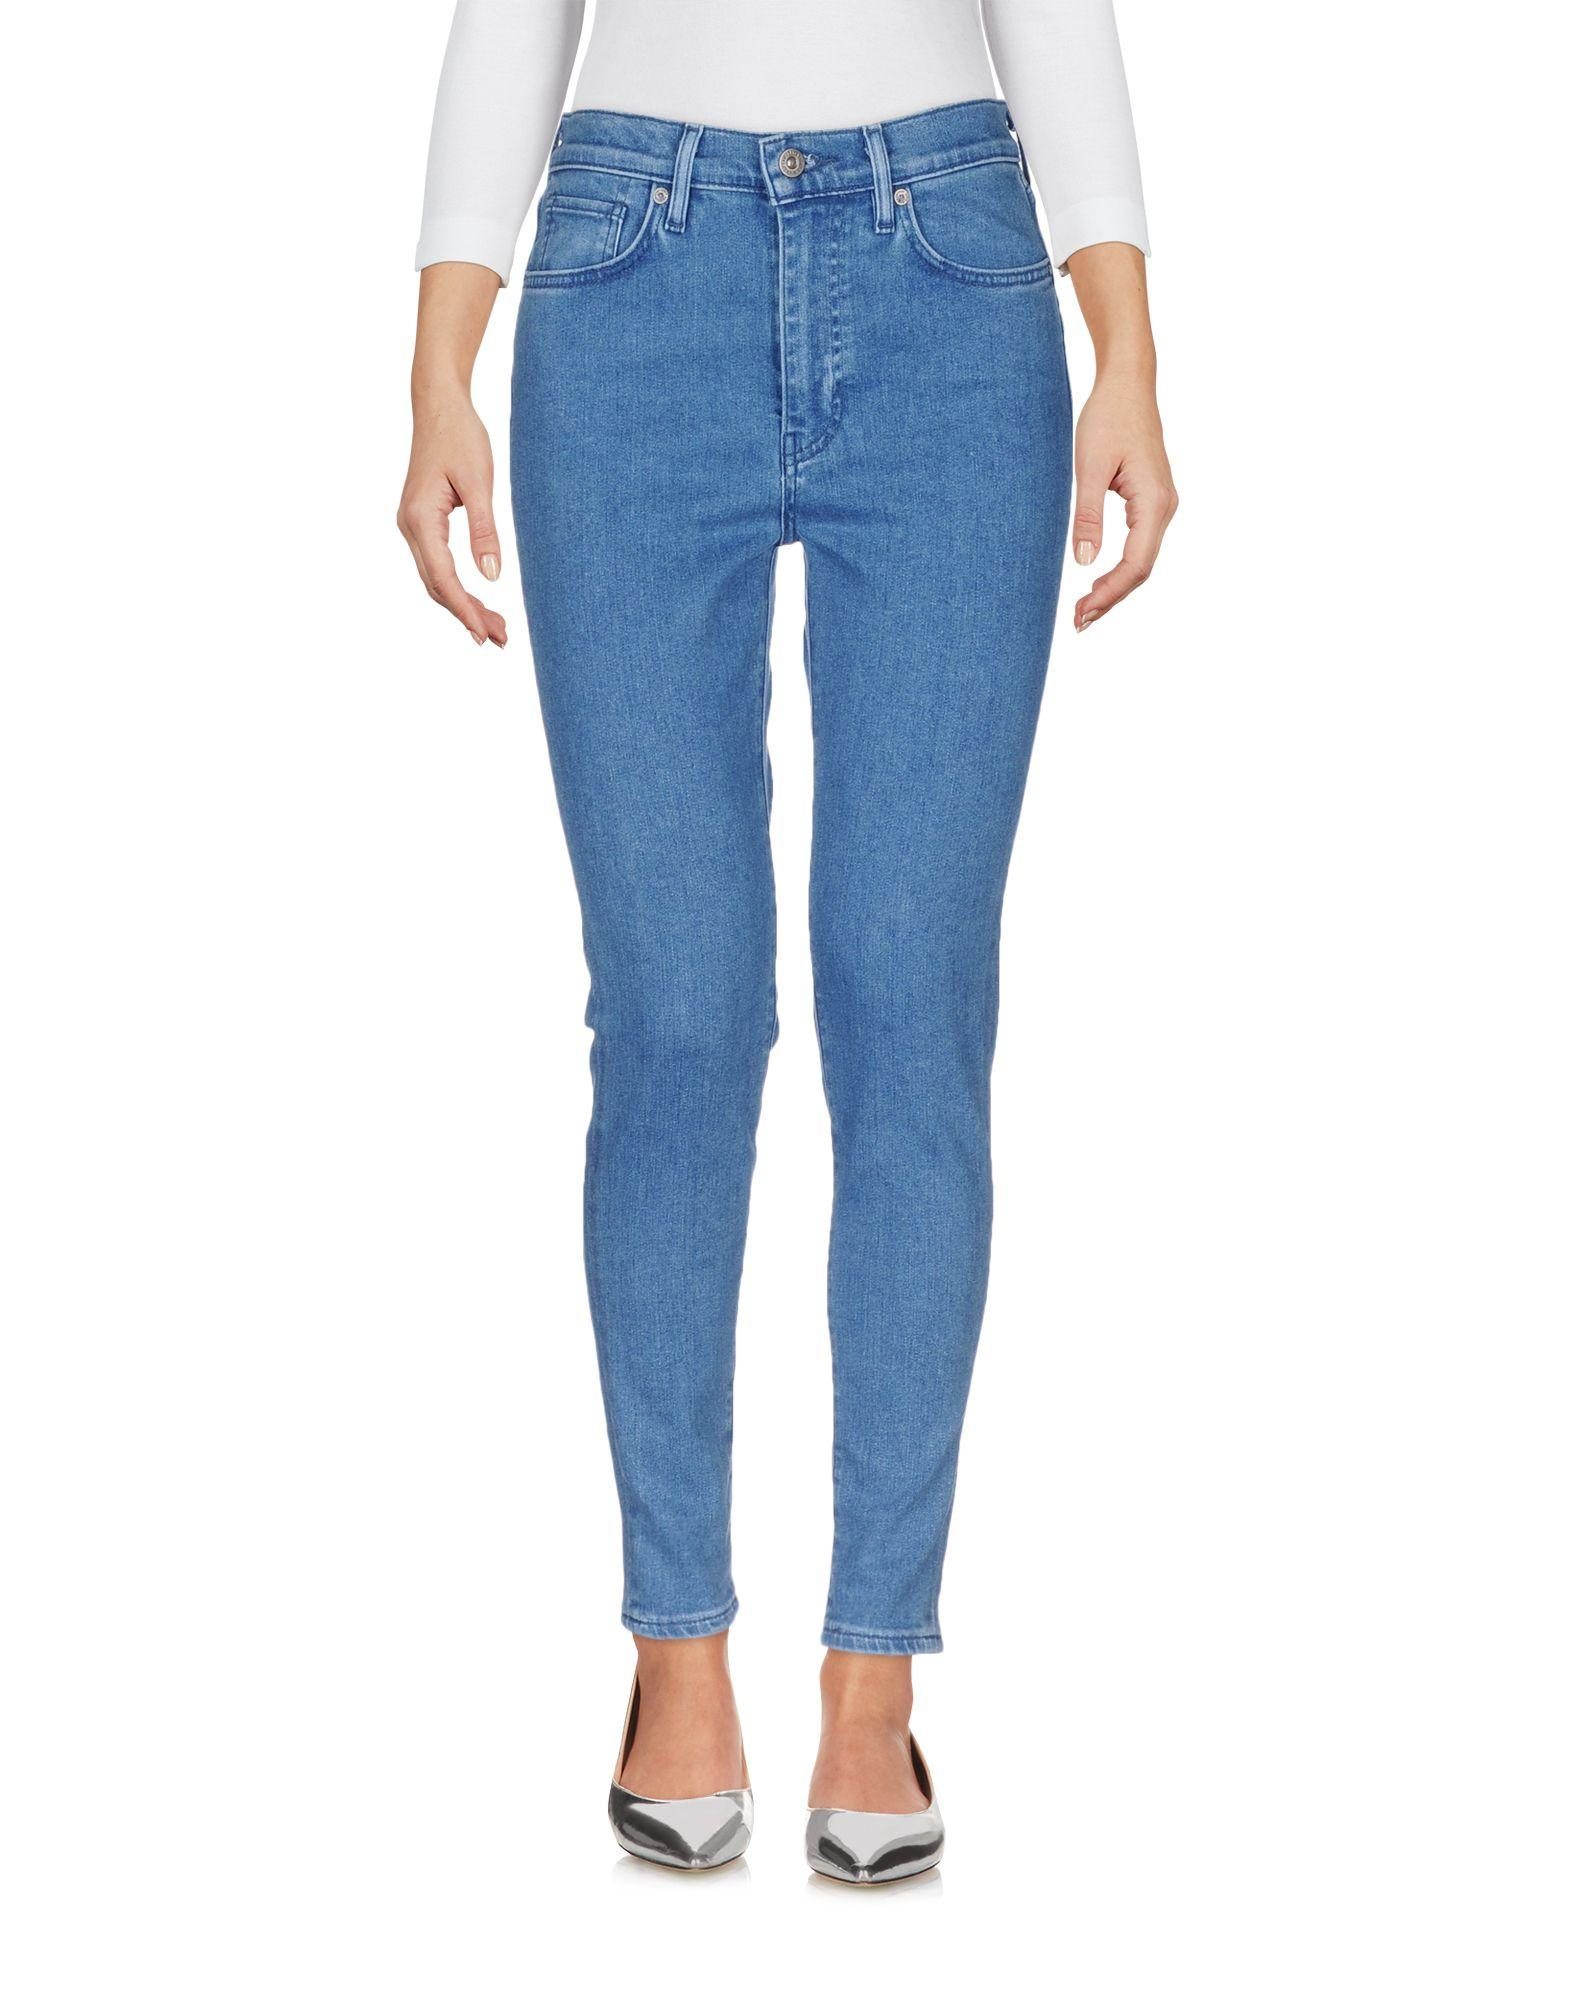 Levi's Vintage Clothing In Blue